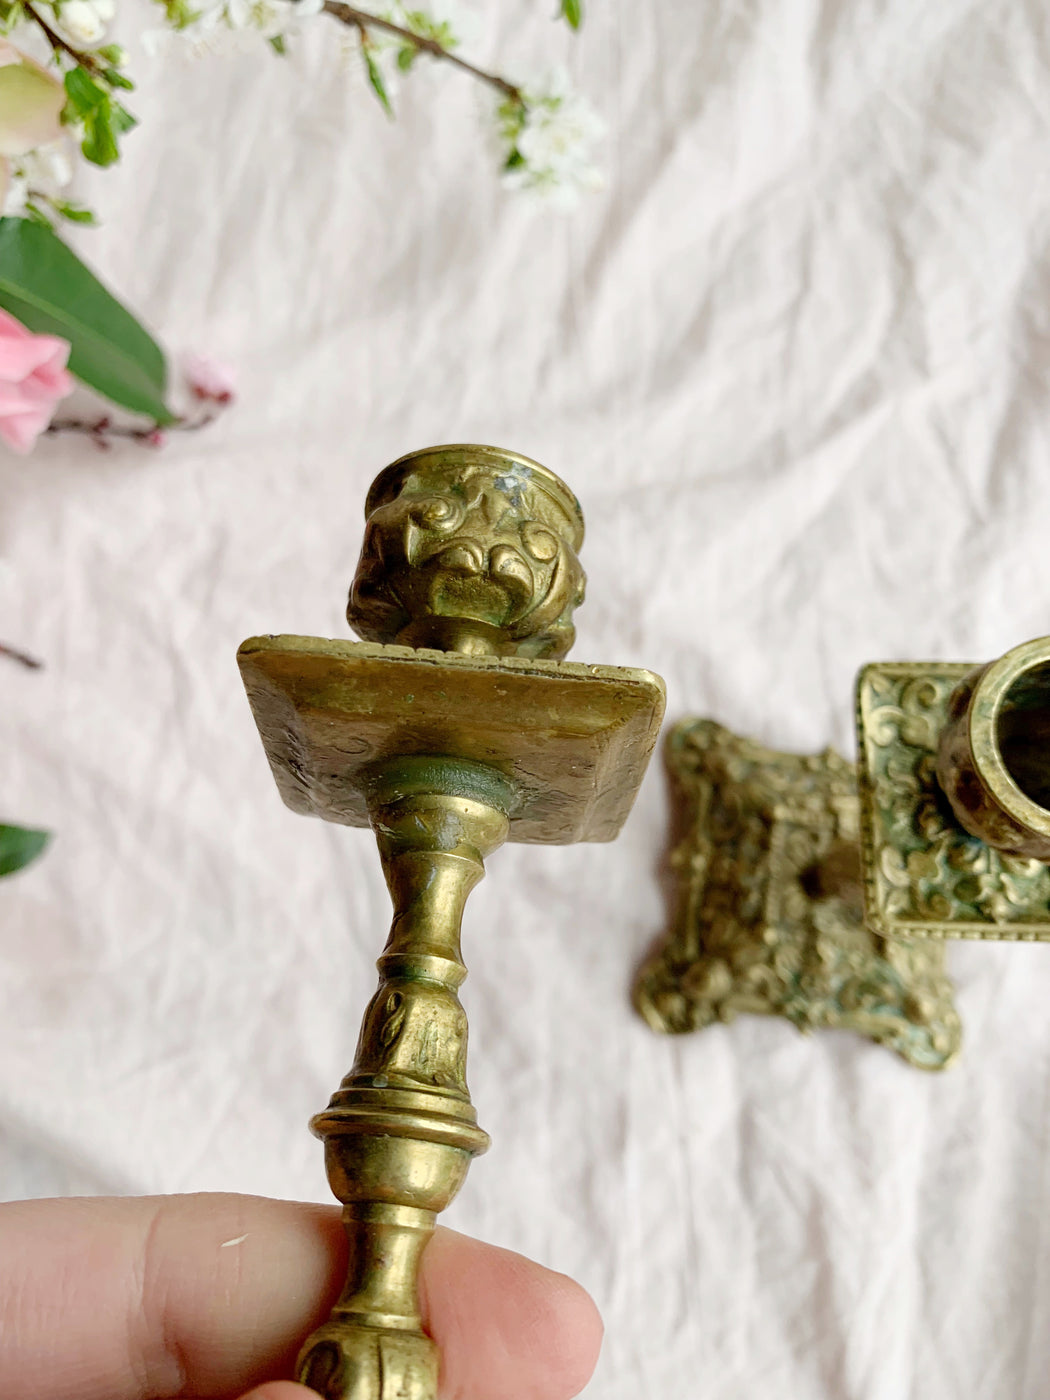 Pair of Ornate Candle Stick Holders | Storytellers Workshop